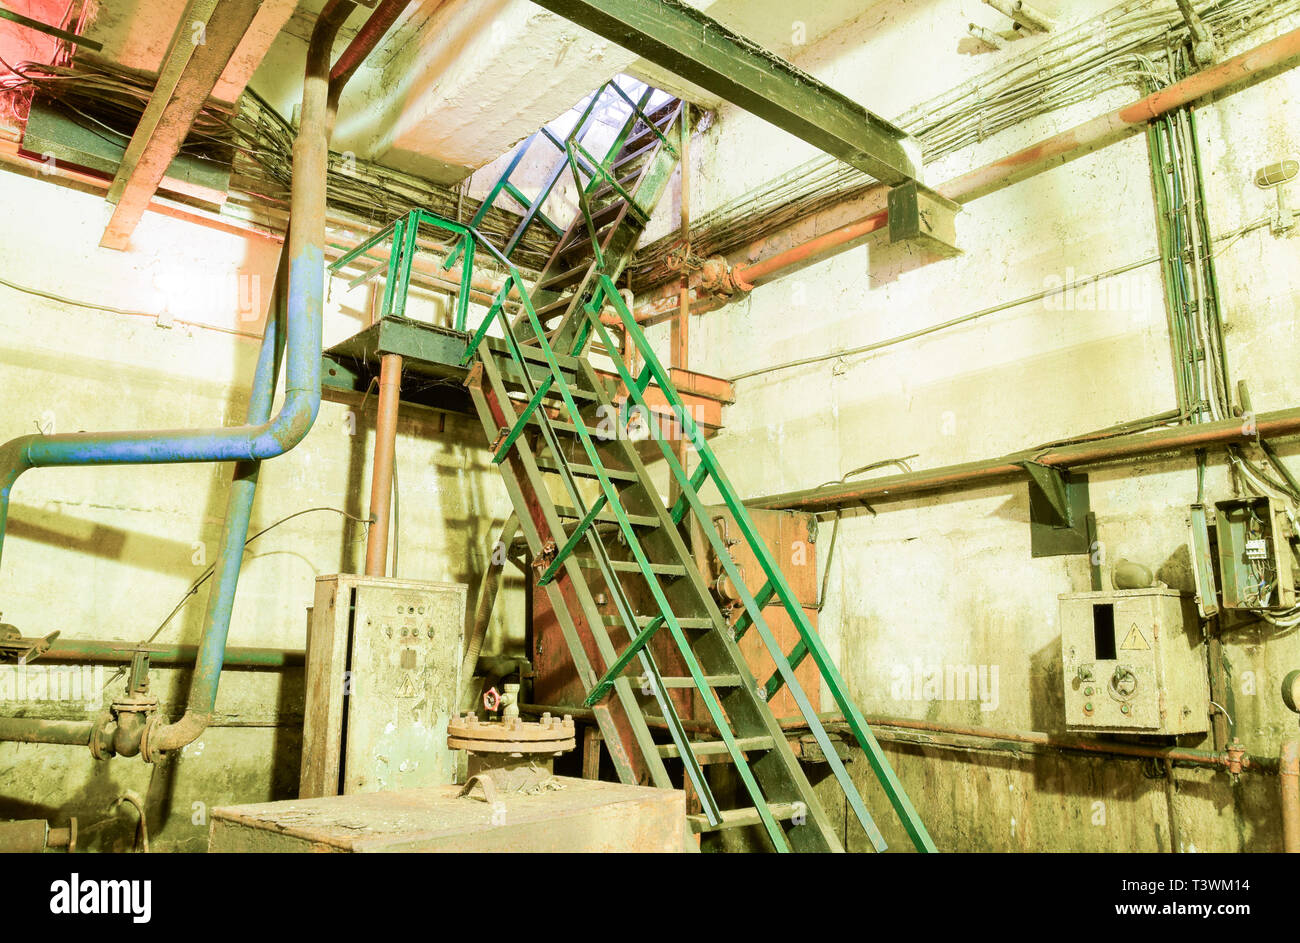 A flight of stairs from the basement of the pumping station. Basement of a water pumping station. Abandoned post-apocalyptic view of the basement pump - Stock Image